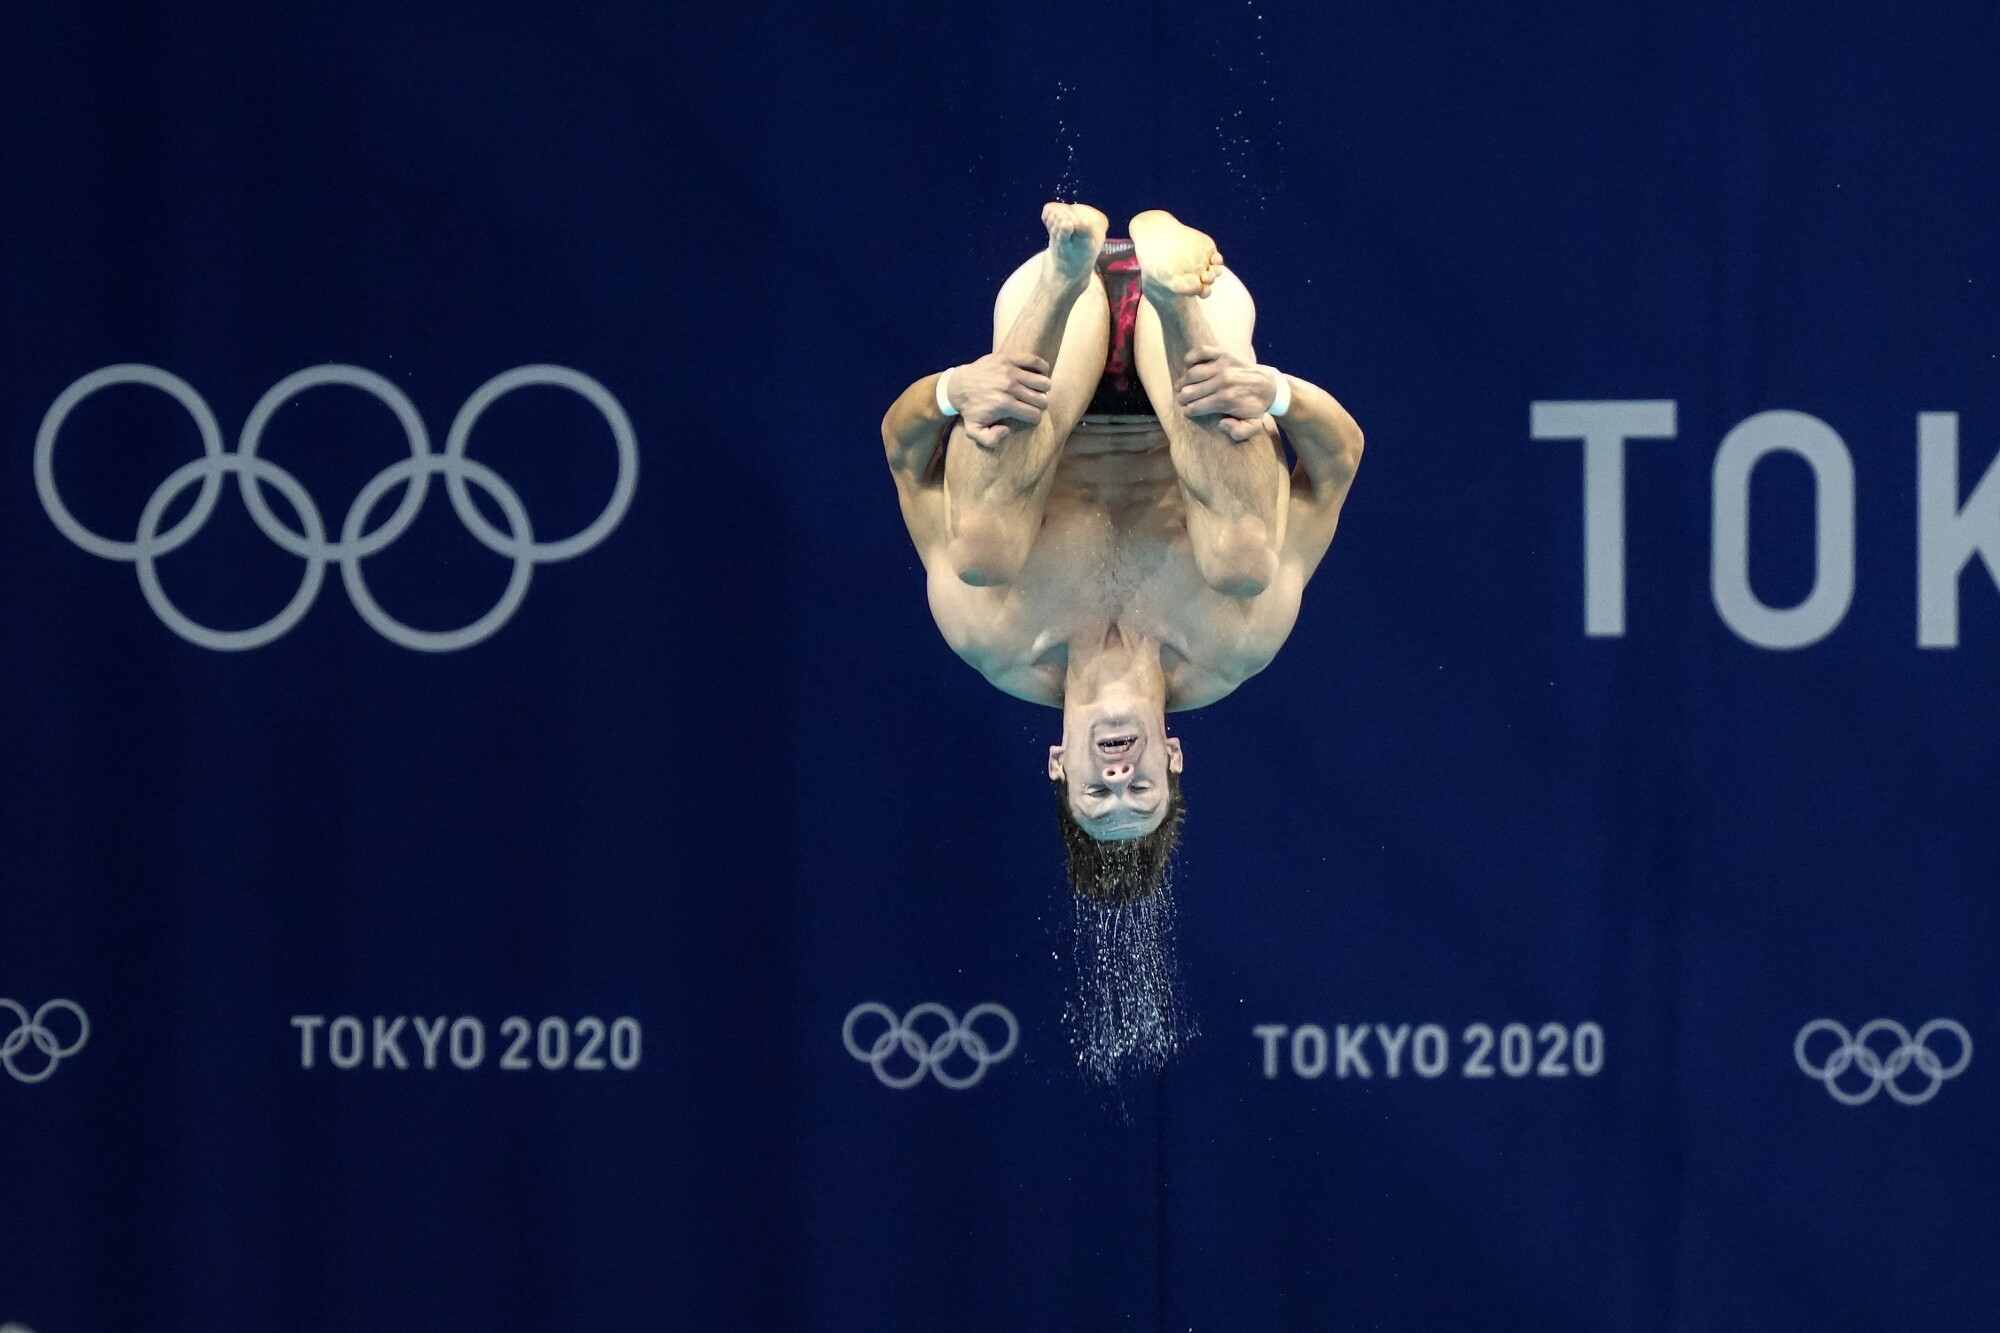 A diver jumps in front of the Olympic rings during a practice session in Tokyo.